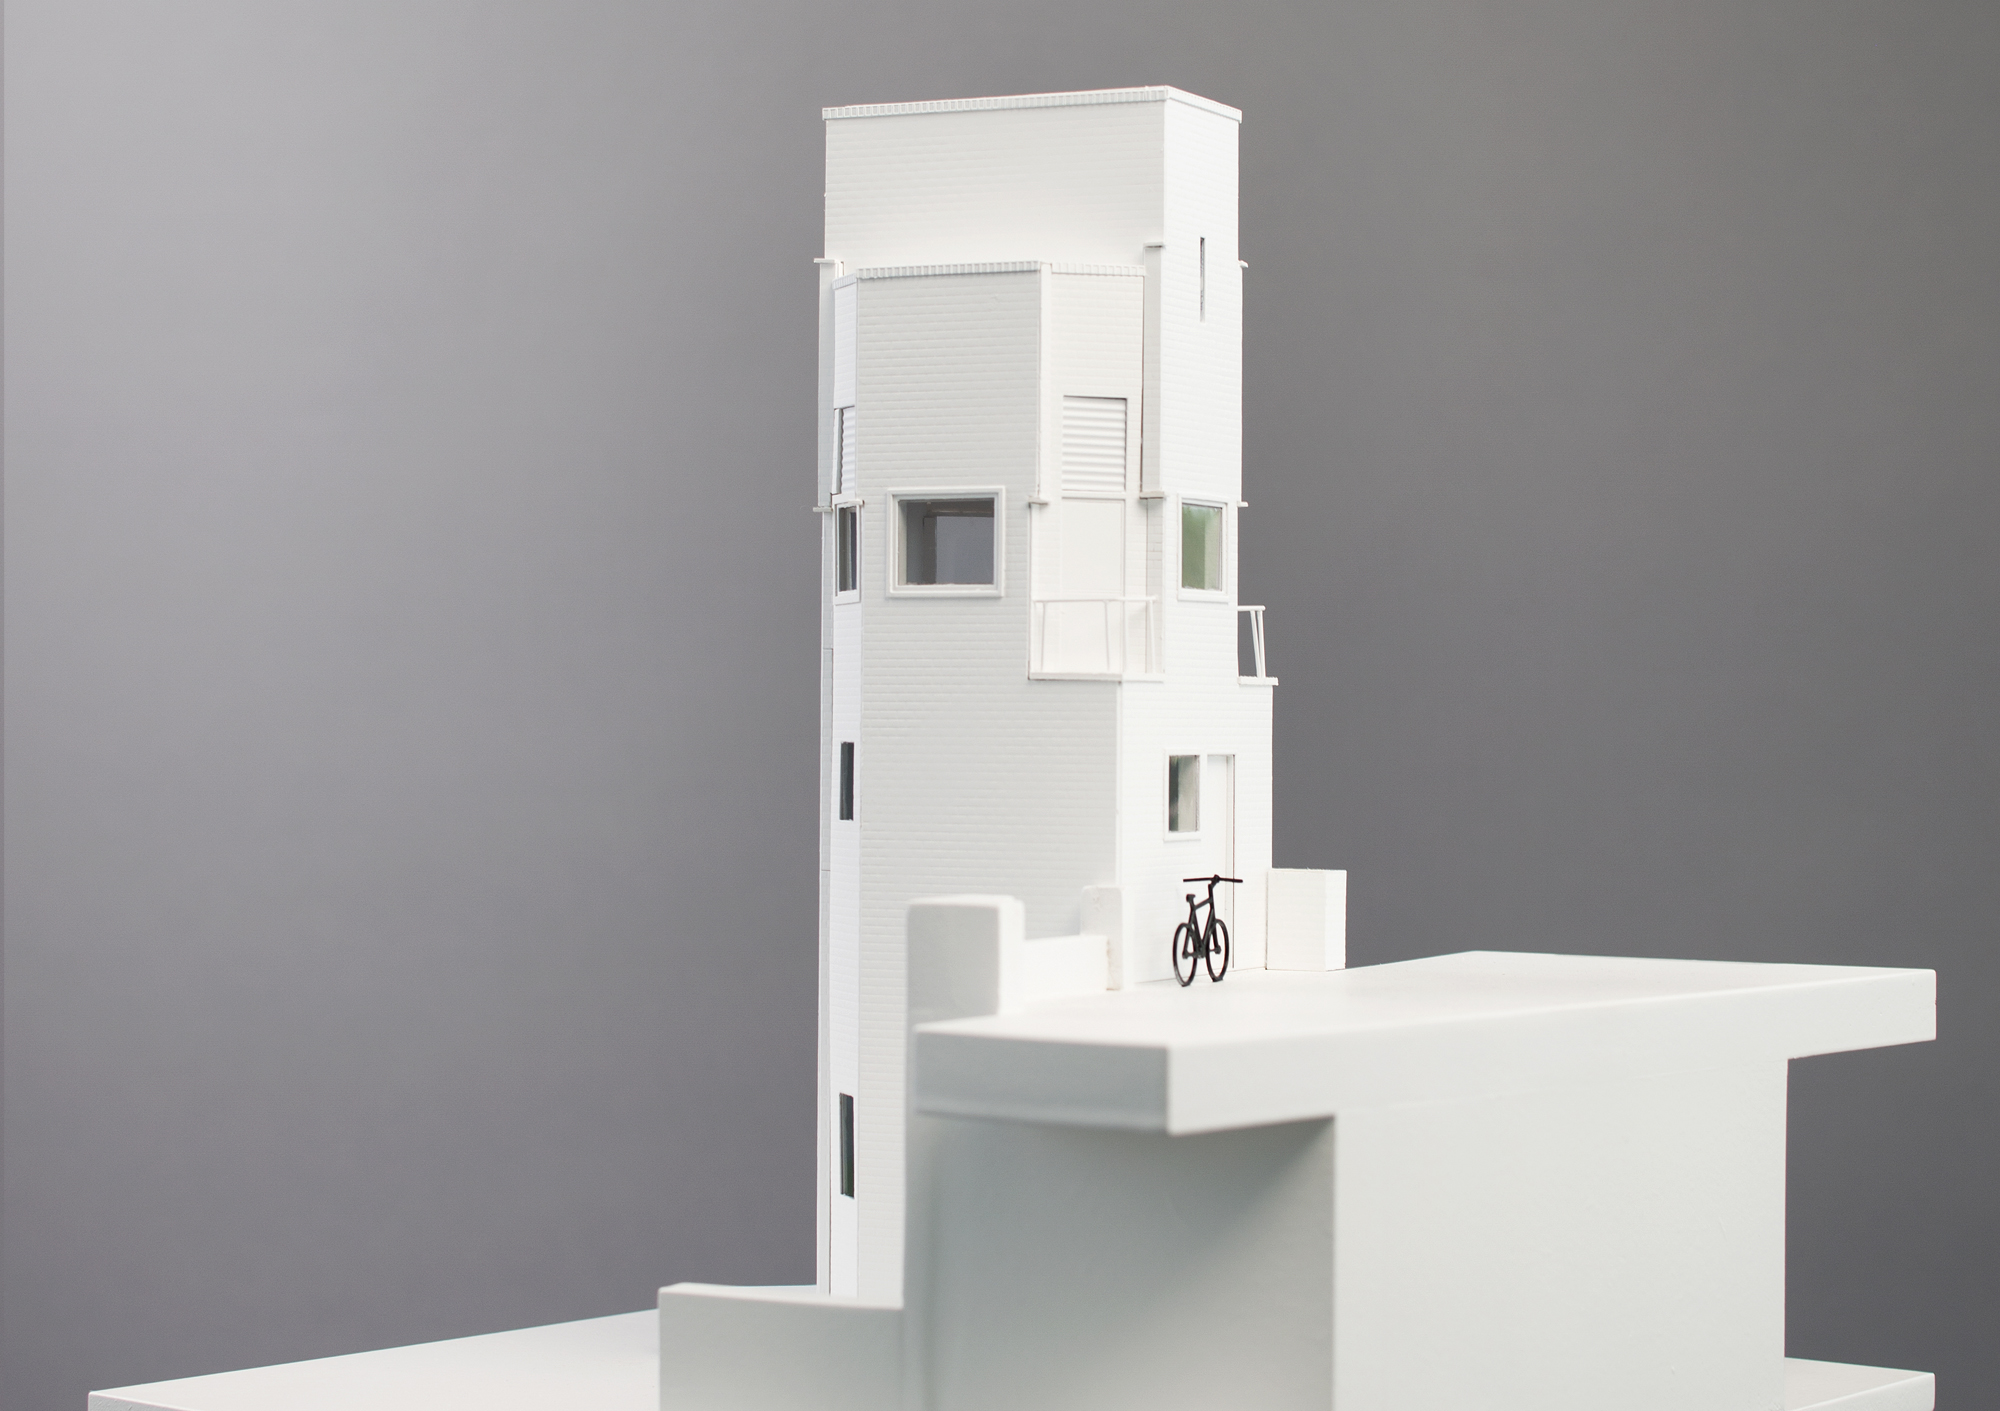 sweets_maquette_003.jpg